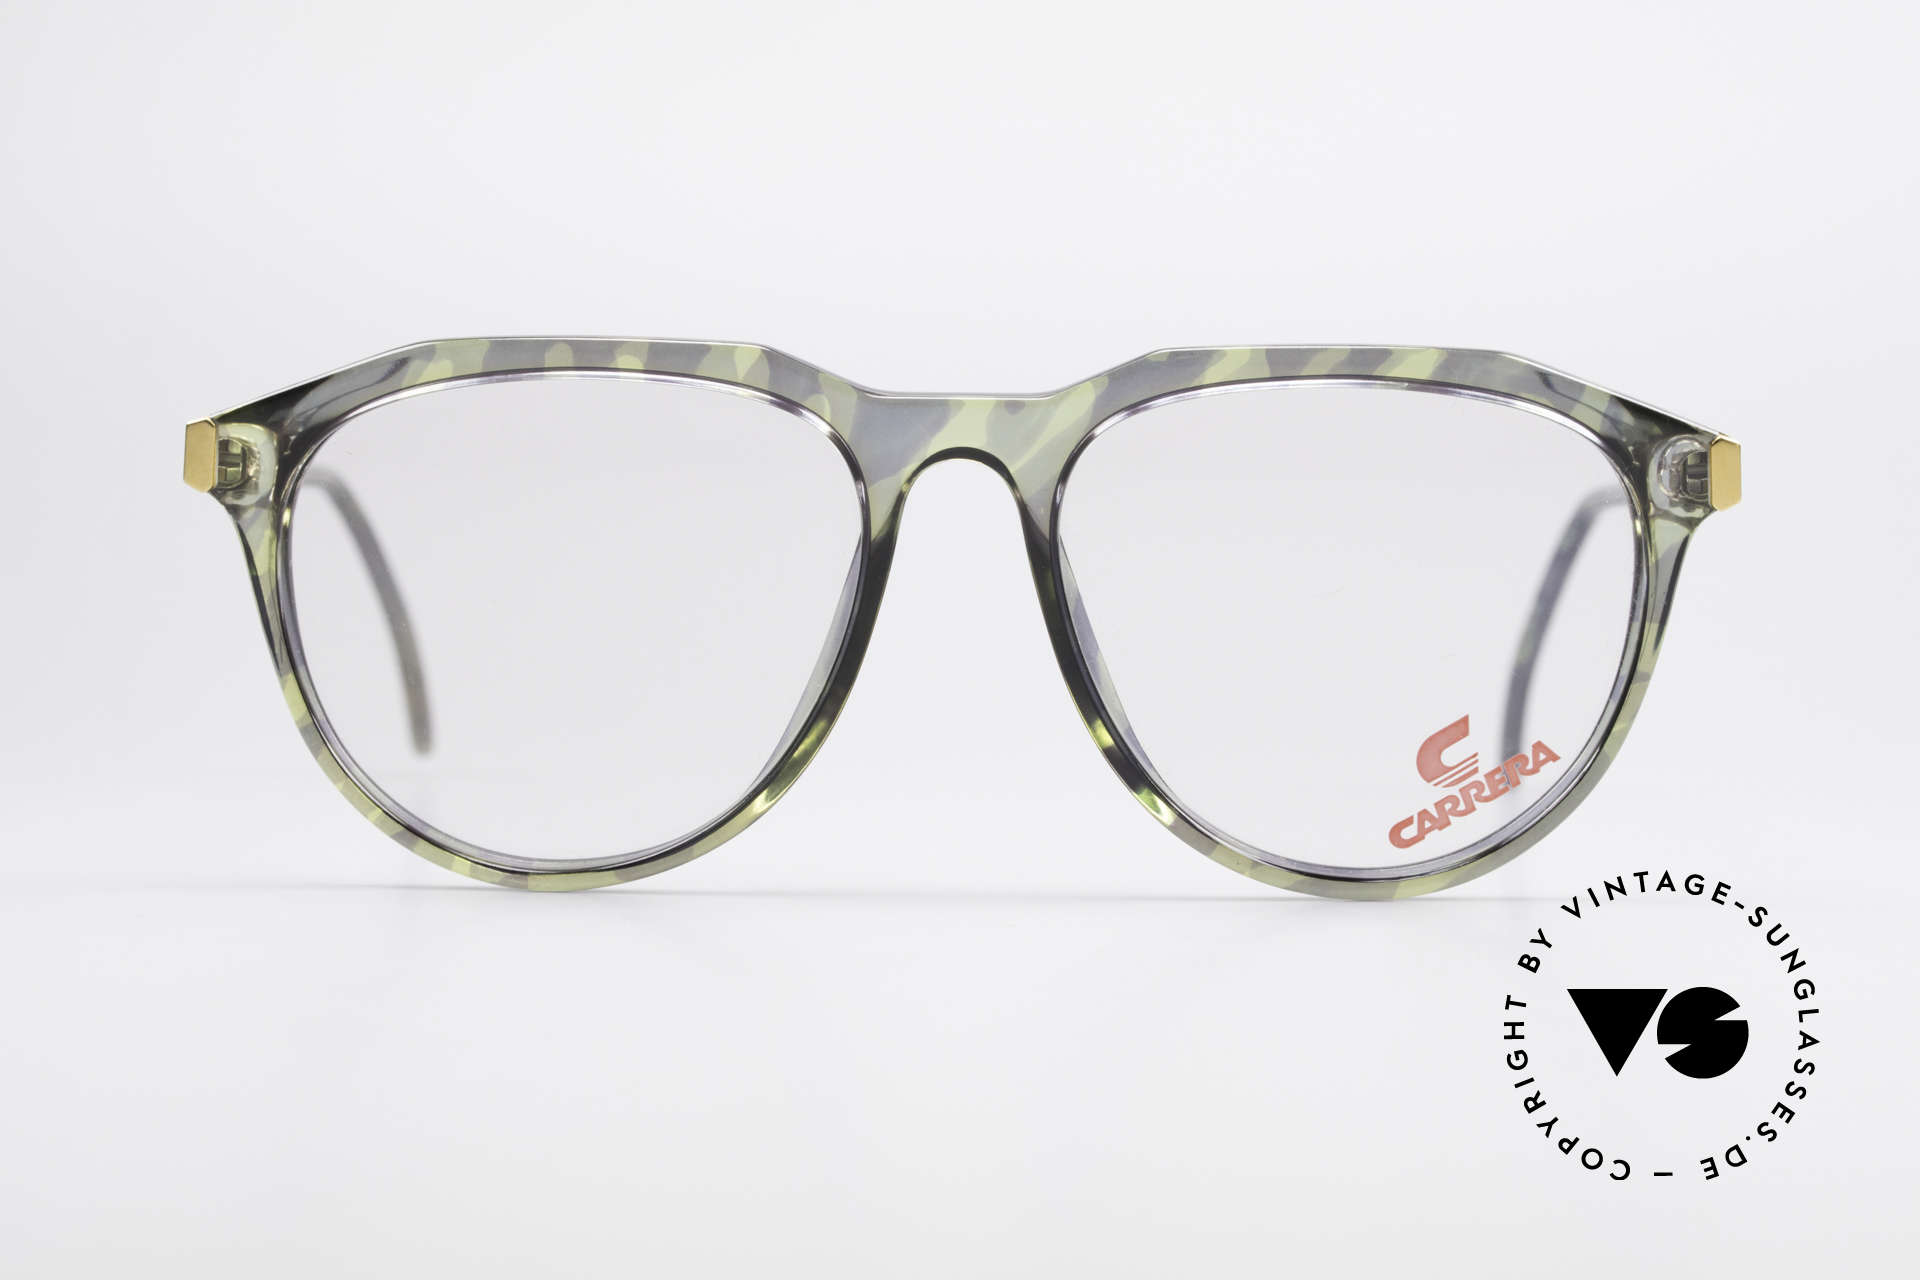 Carrera 5361 90's Optyl Panto Eyeglasses, high-end Optyl material frame; made in Germany, Made for Men